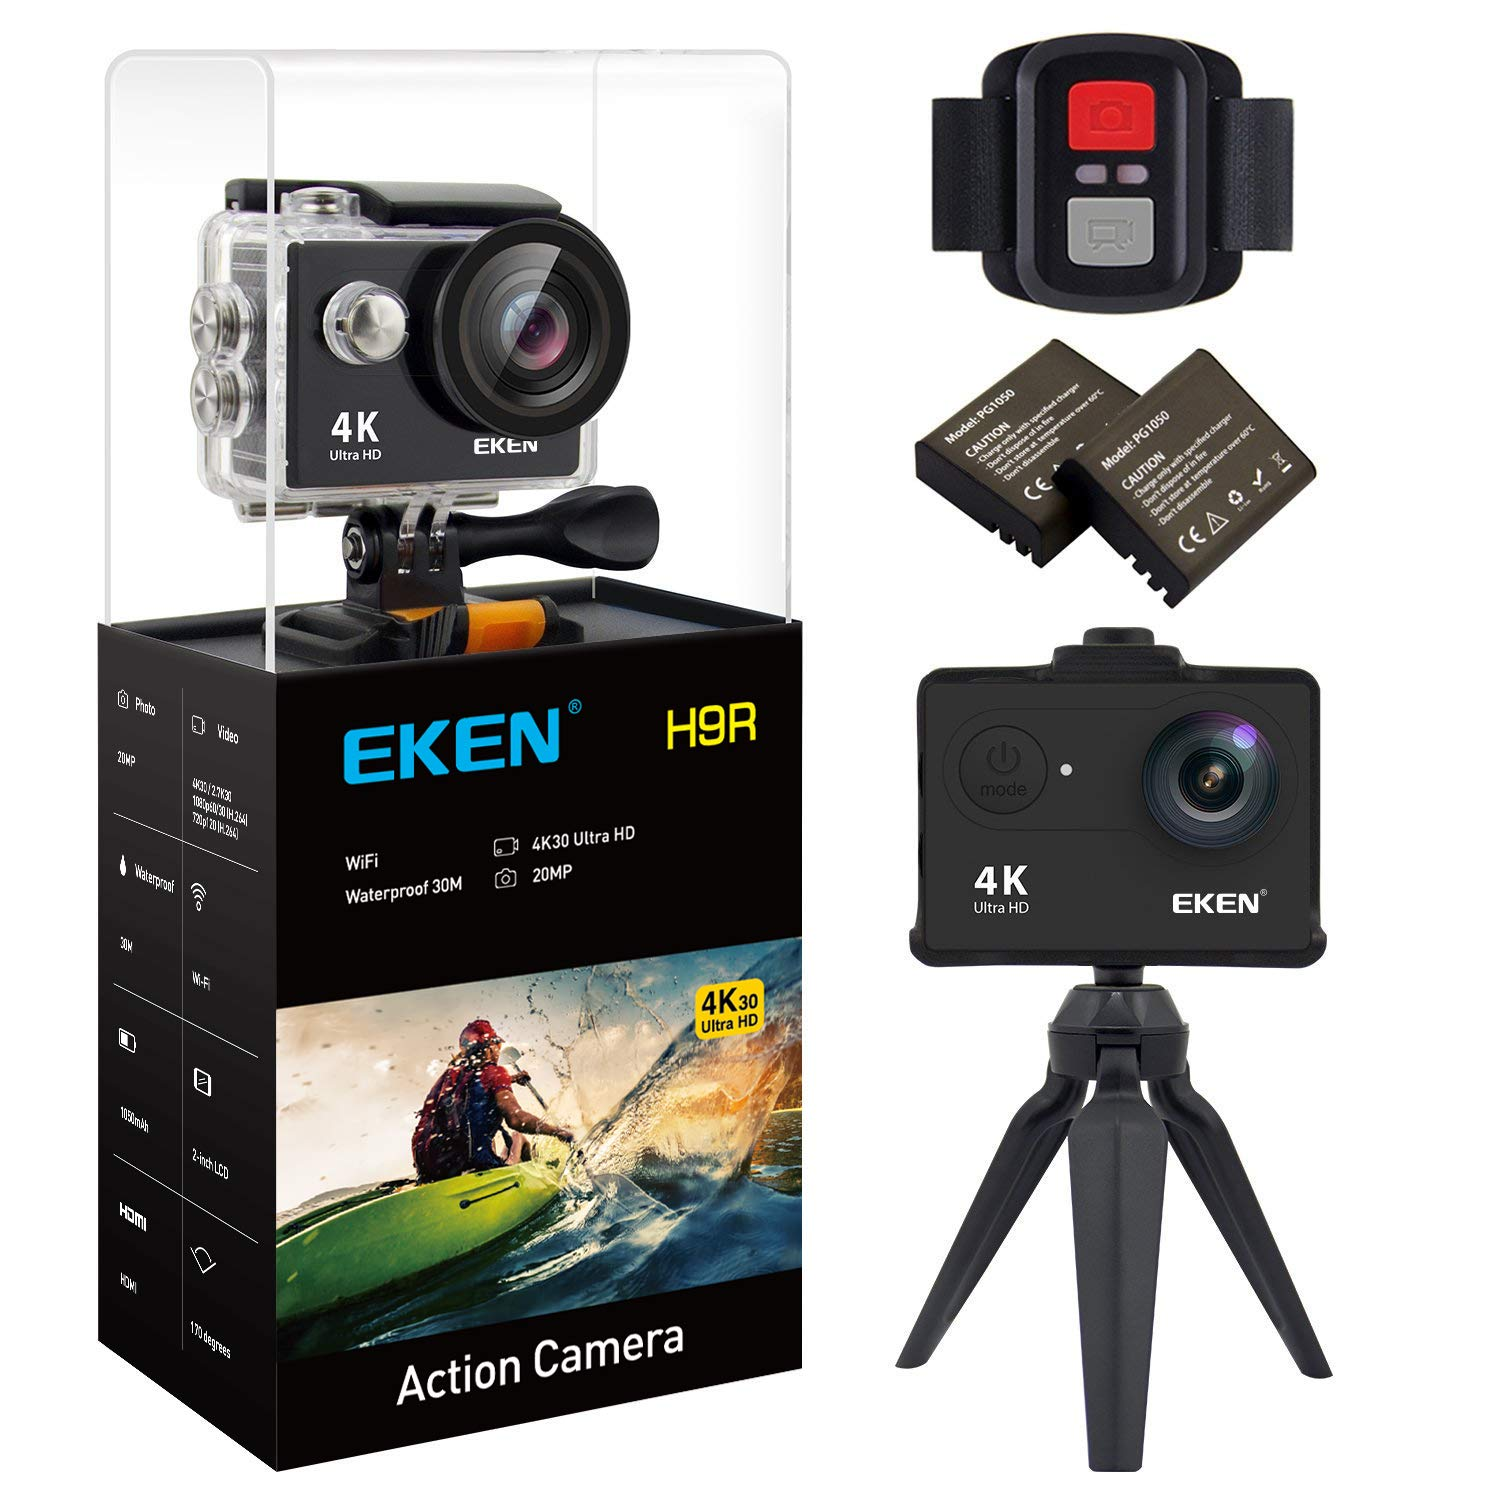 New EKEN H9R Action Camera 4K WiFi Waterproof Sports Camera Full HD 4K30 2.7K30 1080p60 720p120 Video Camera 20MP Photo and 170 Wide Angle Lens ...